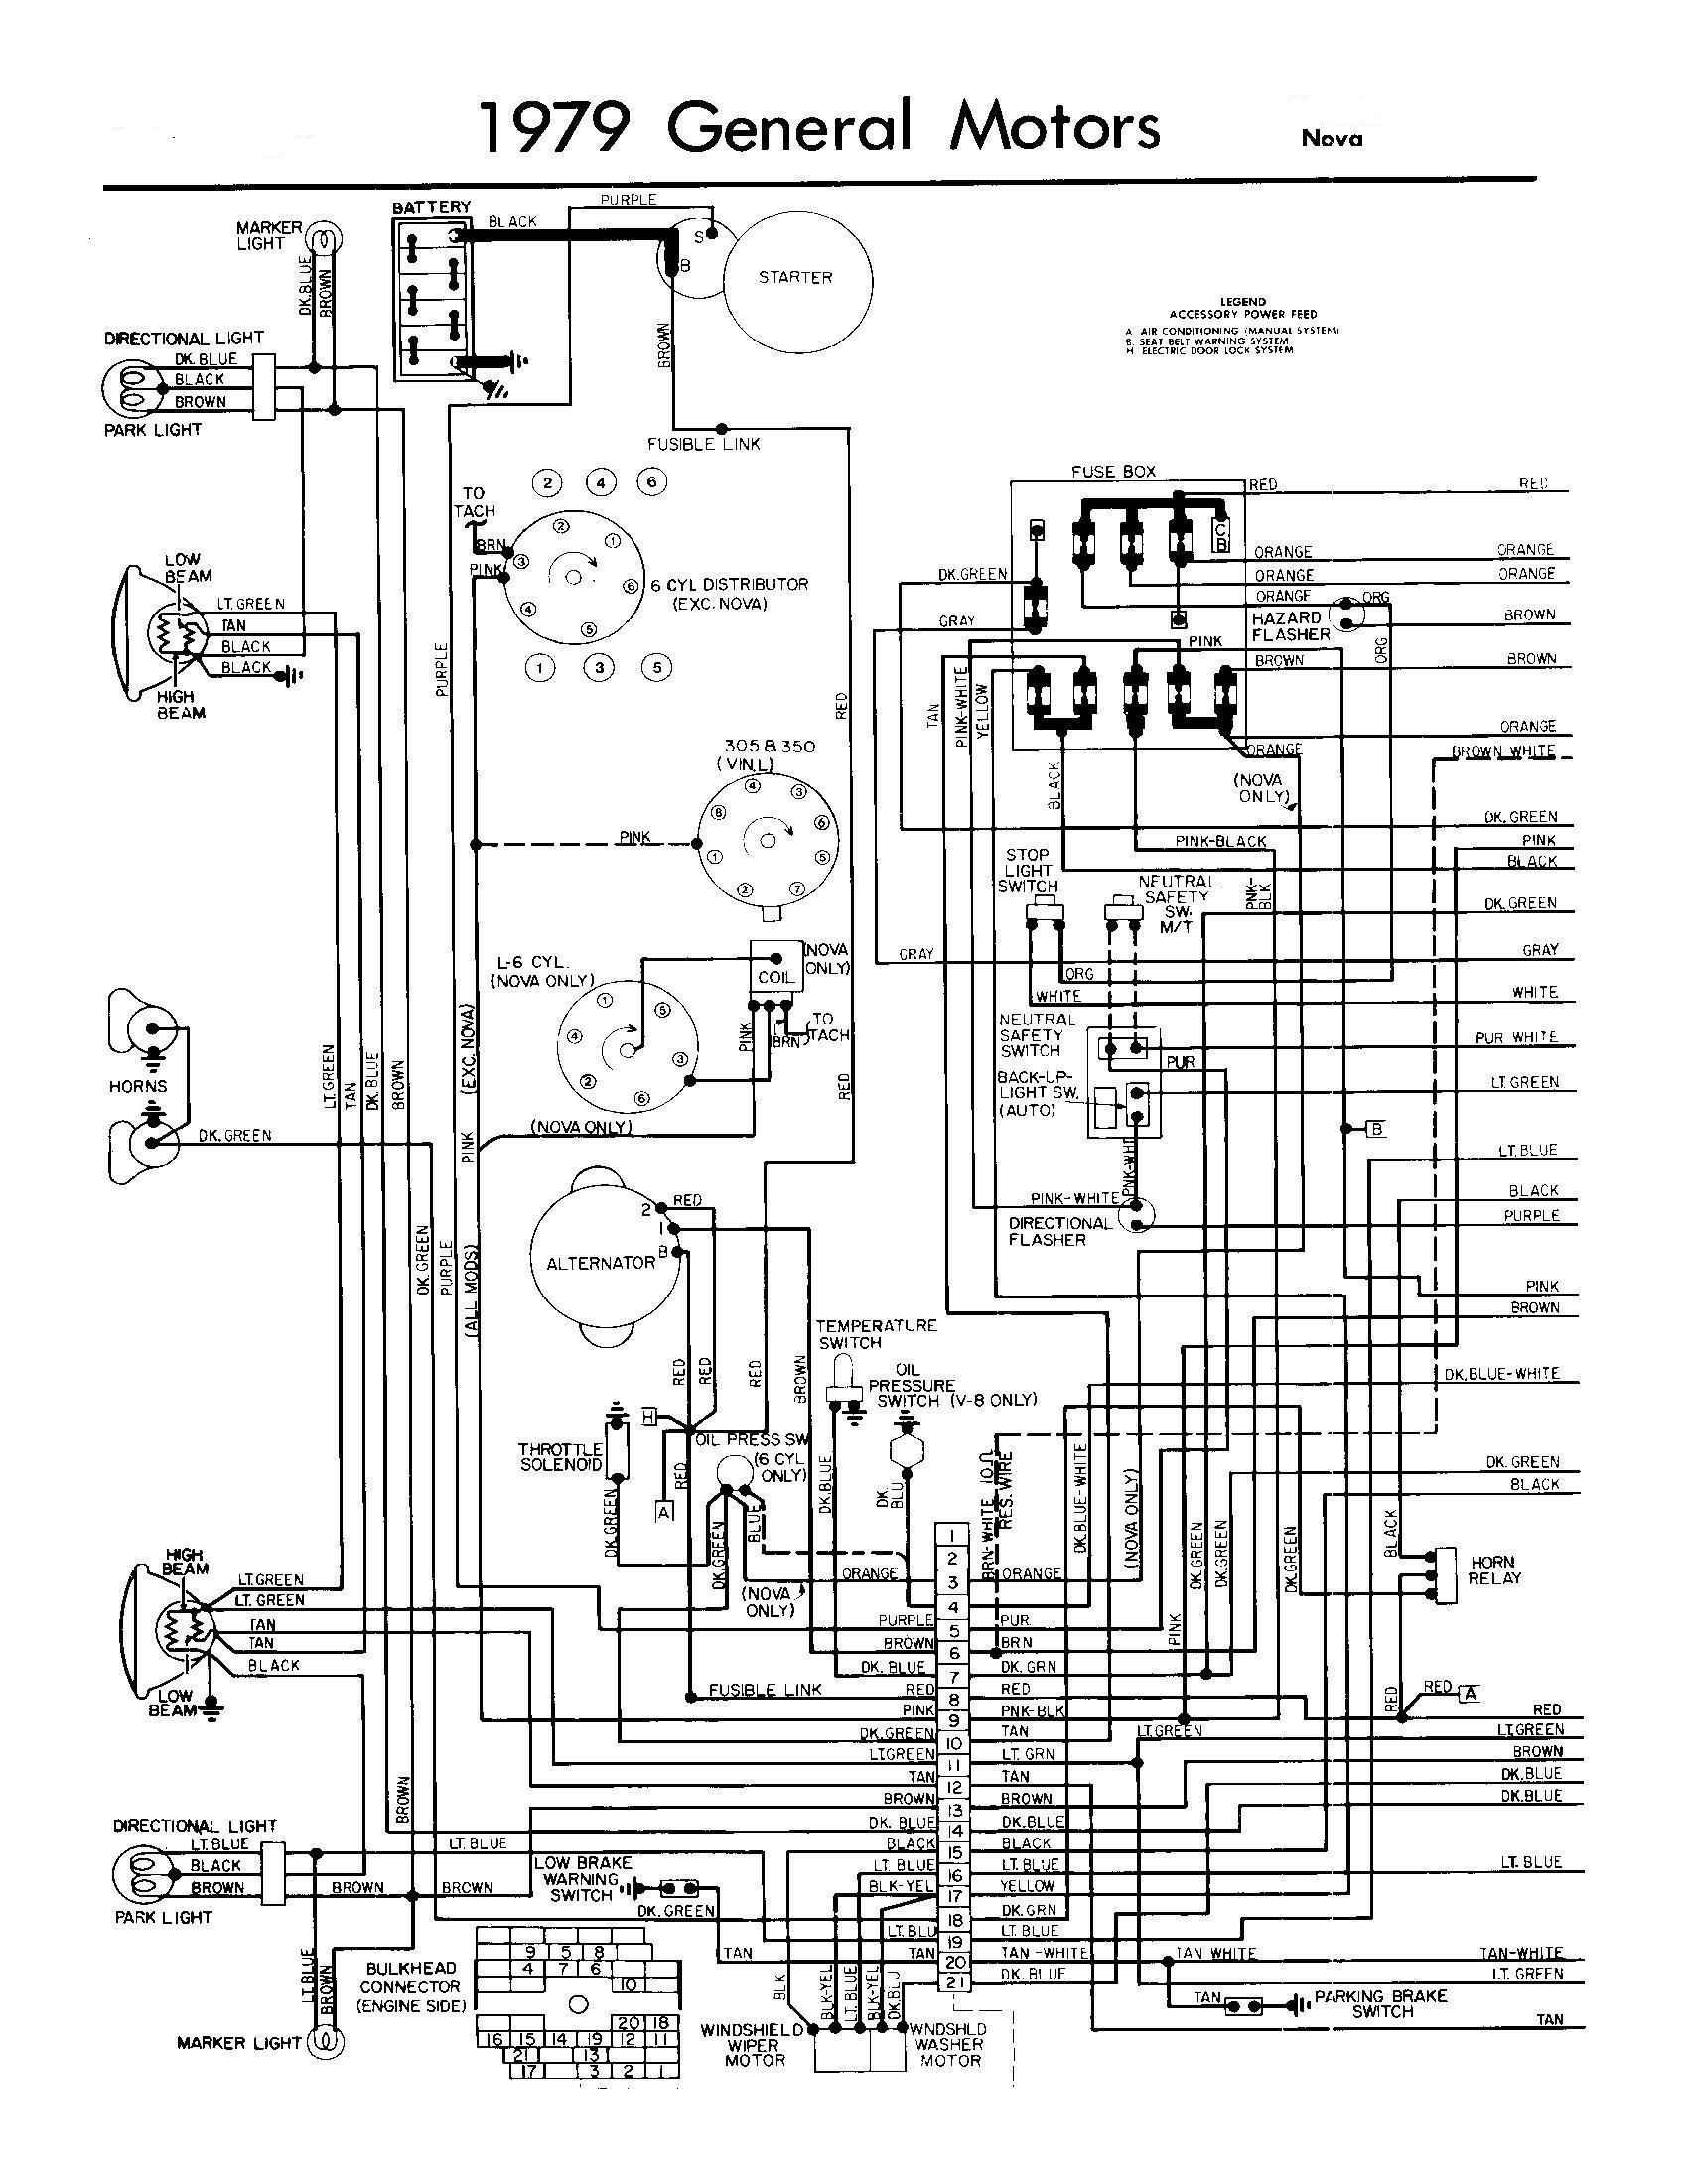 carlo wiring harness on 78 trans am air conditioning wiring diagram rh plasmapen co 1980 Camaro Ignition Wiring Diagram 1980 Camaro Ignition Wiring Diagram